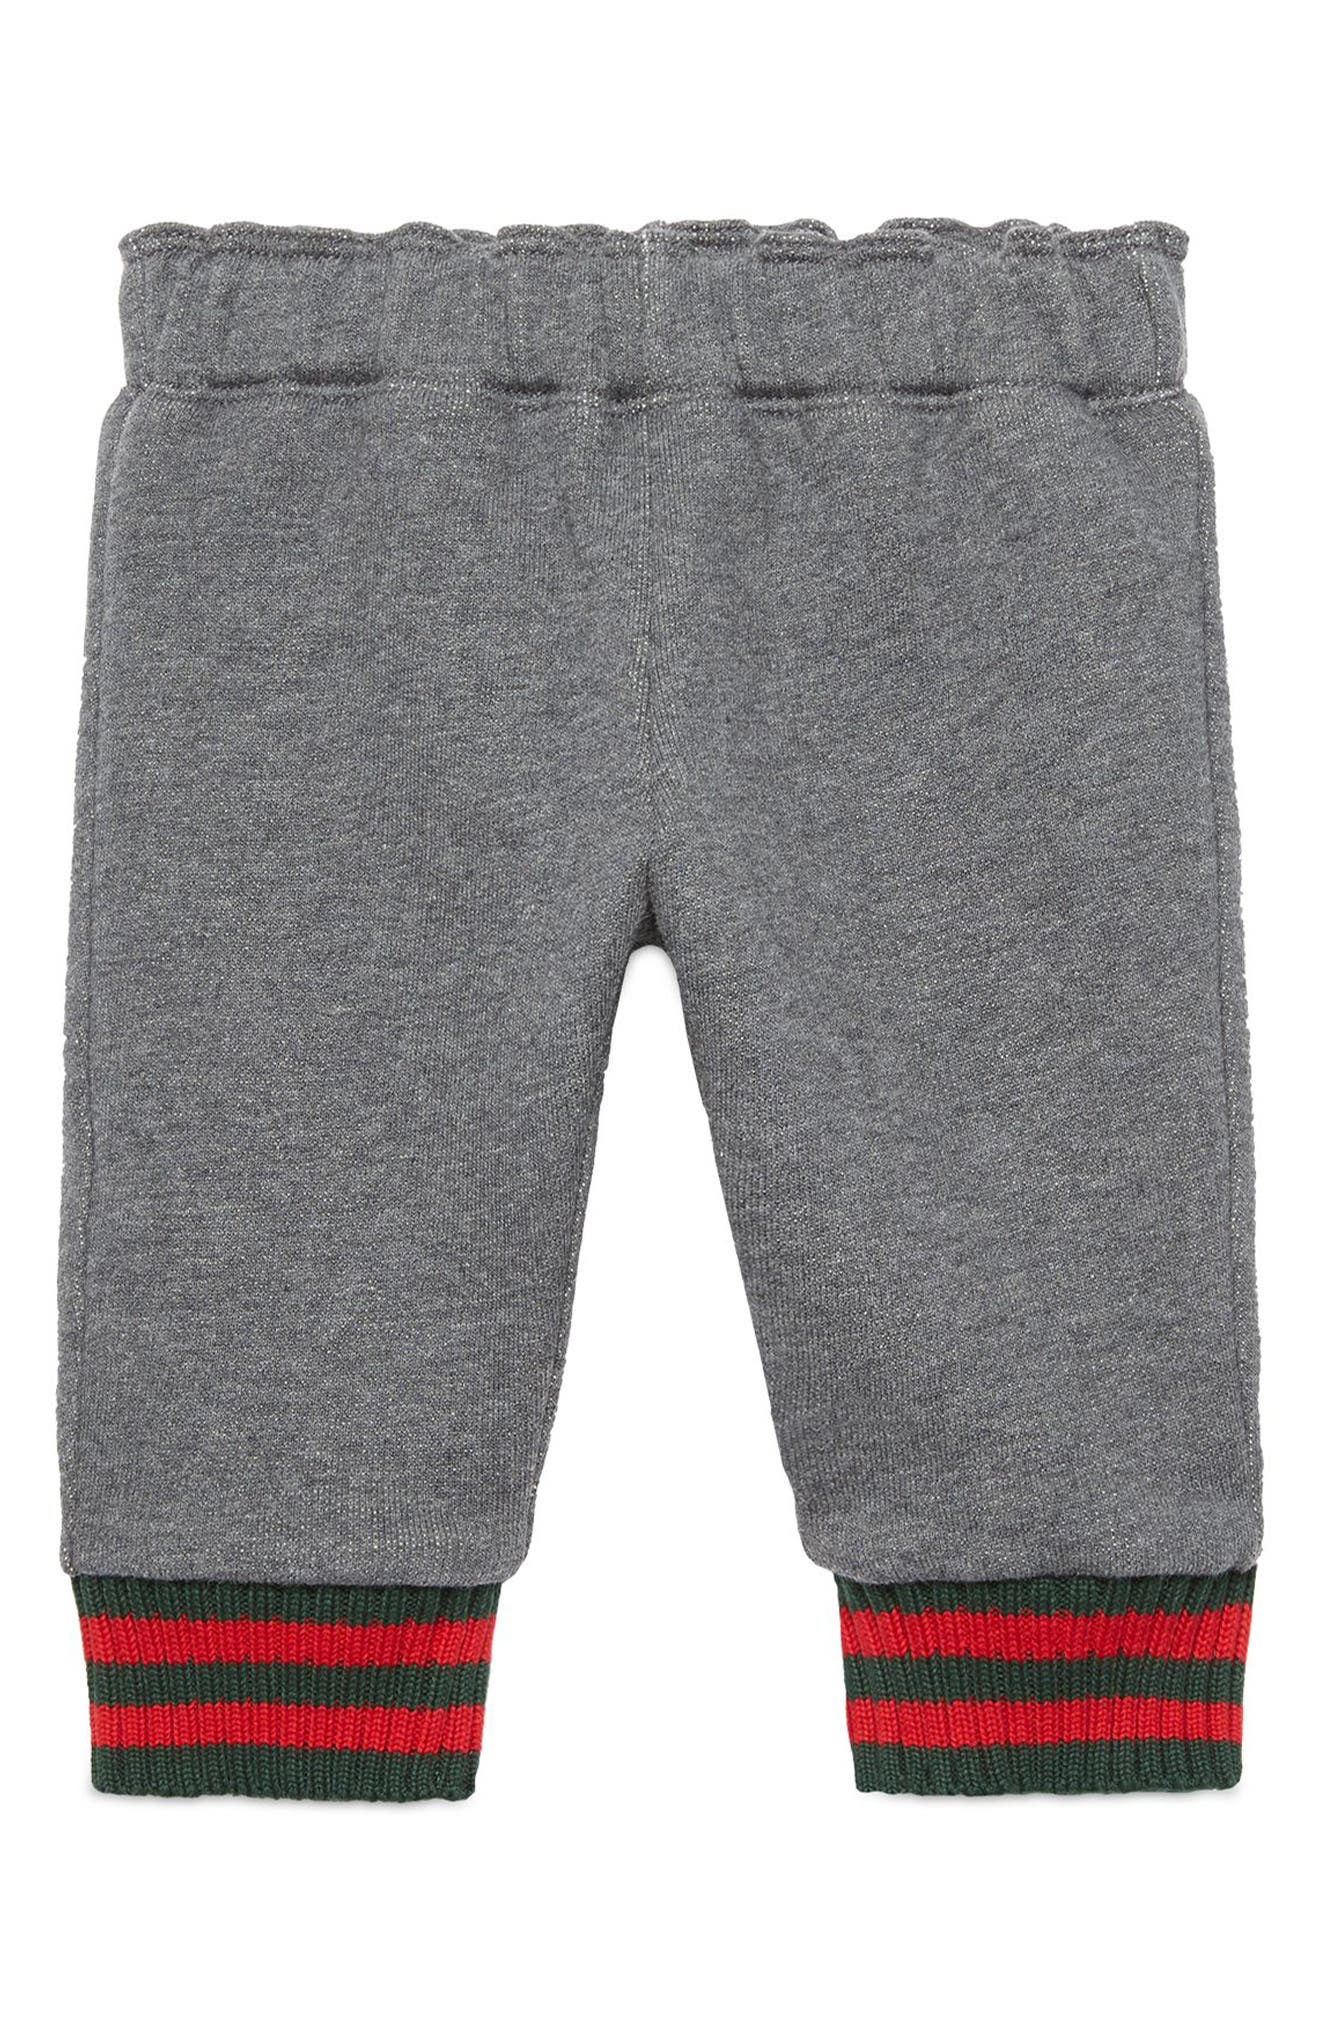 GUCCI Jogger Pants